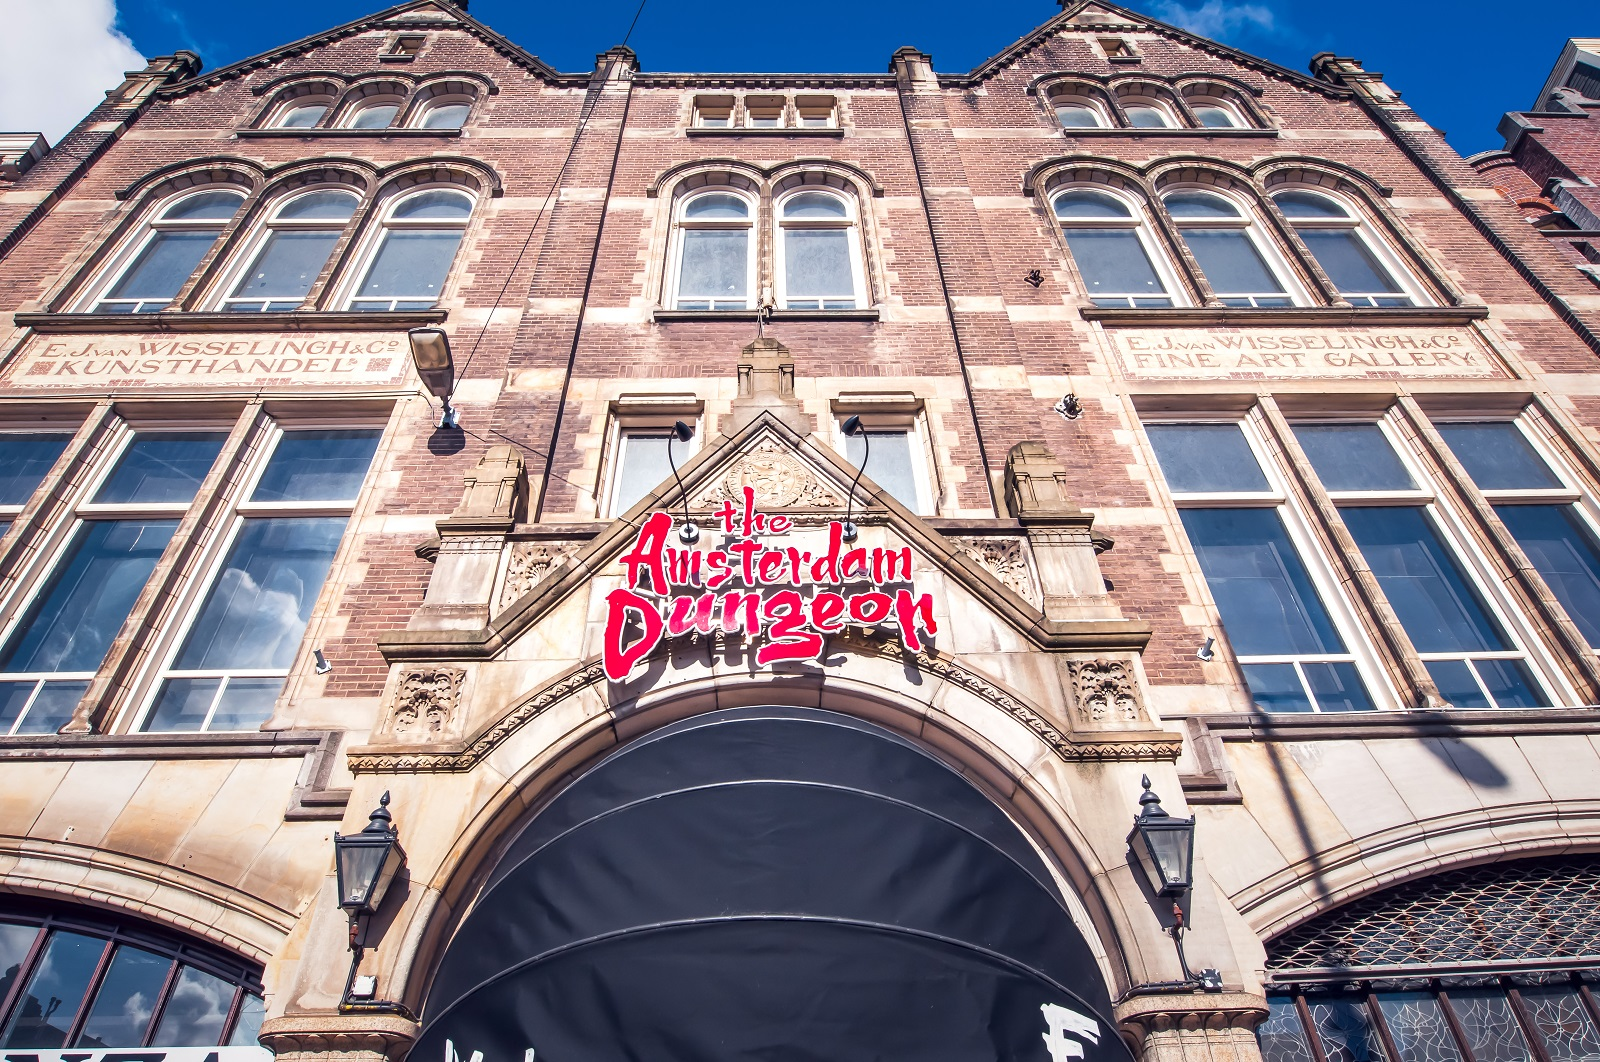 Facade of the Amsterdam Dungeon from the street